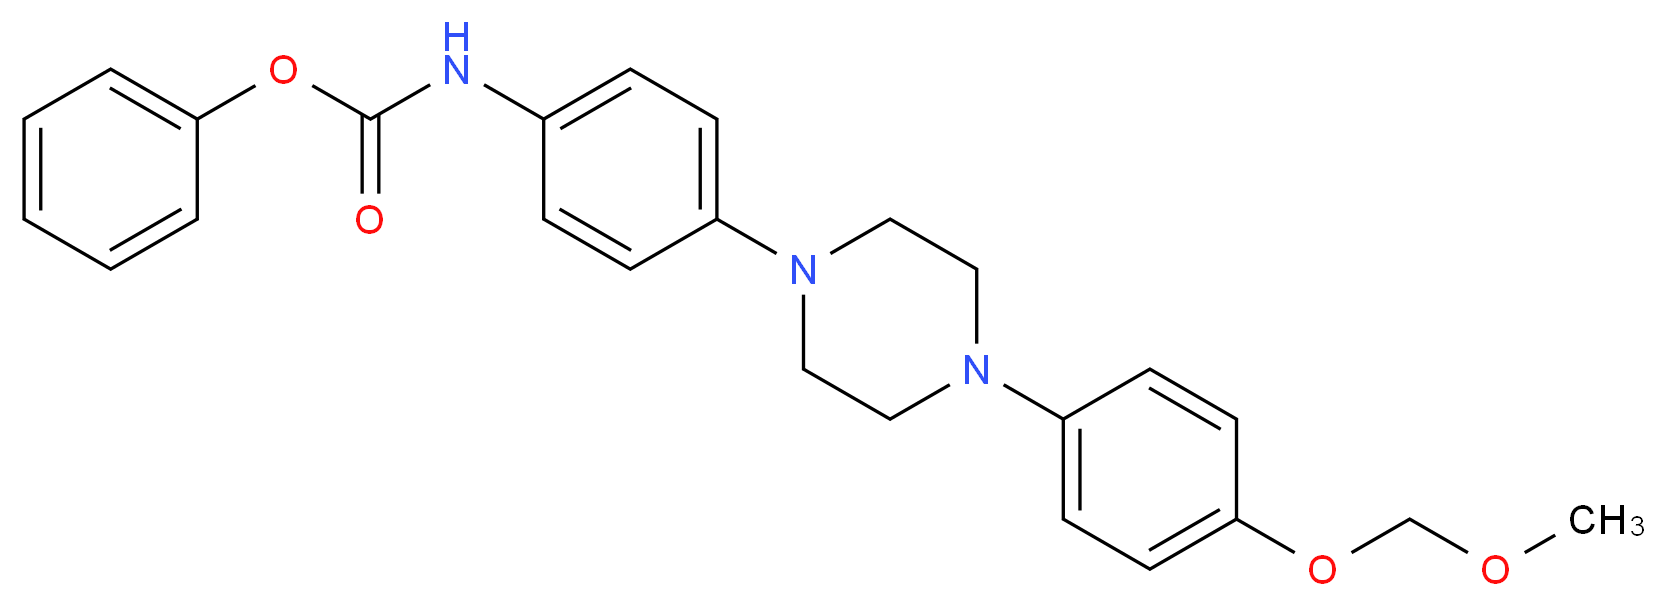 4-[4-(4-O-Methoxymethyl-4-hydroxyphenyl)-1-piperazinyl]phenyl]carbamic Acid Phenyl Ester_分子结构_CAS_1329503-19-6)